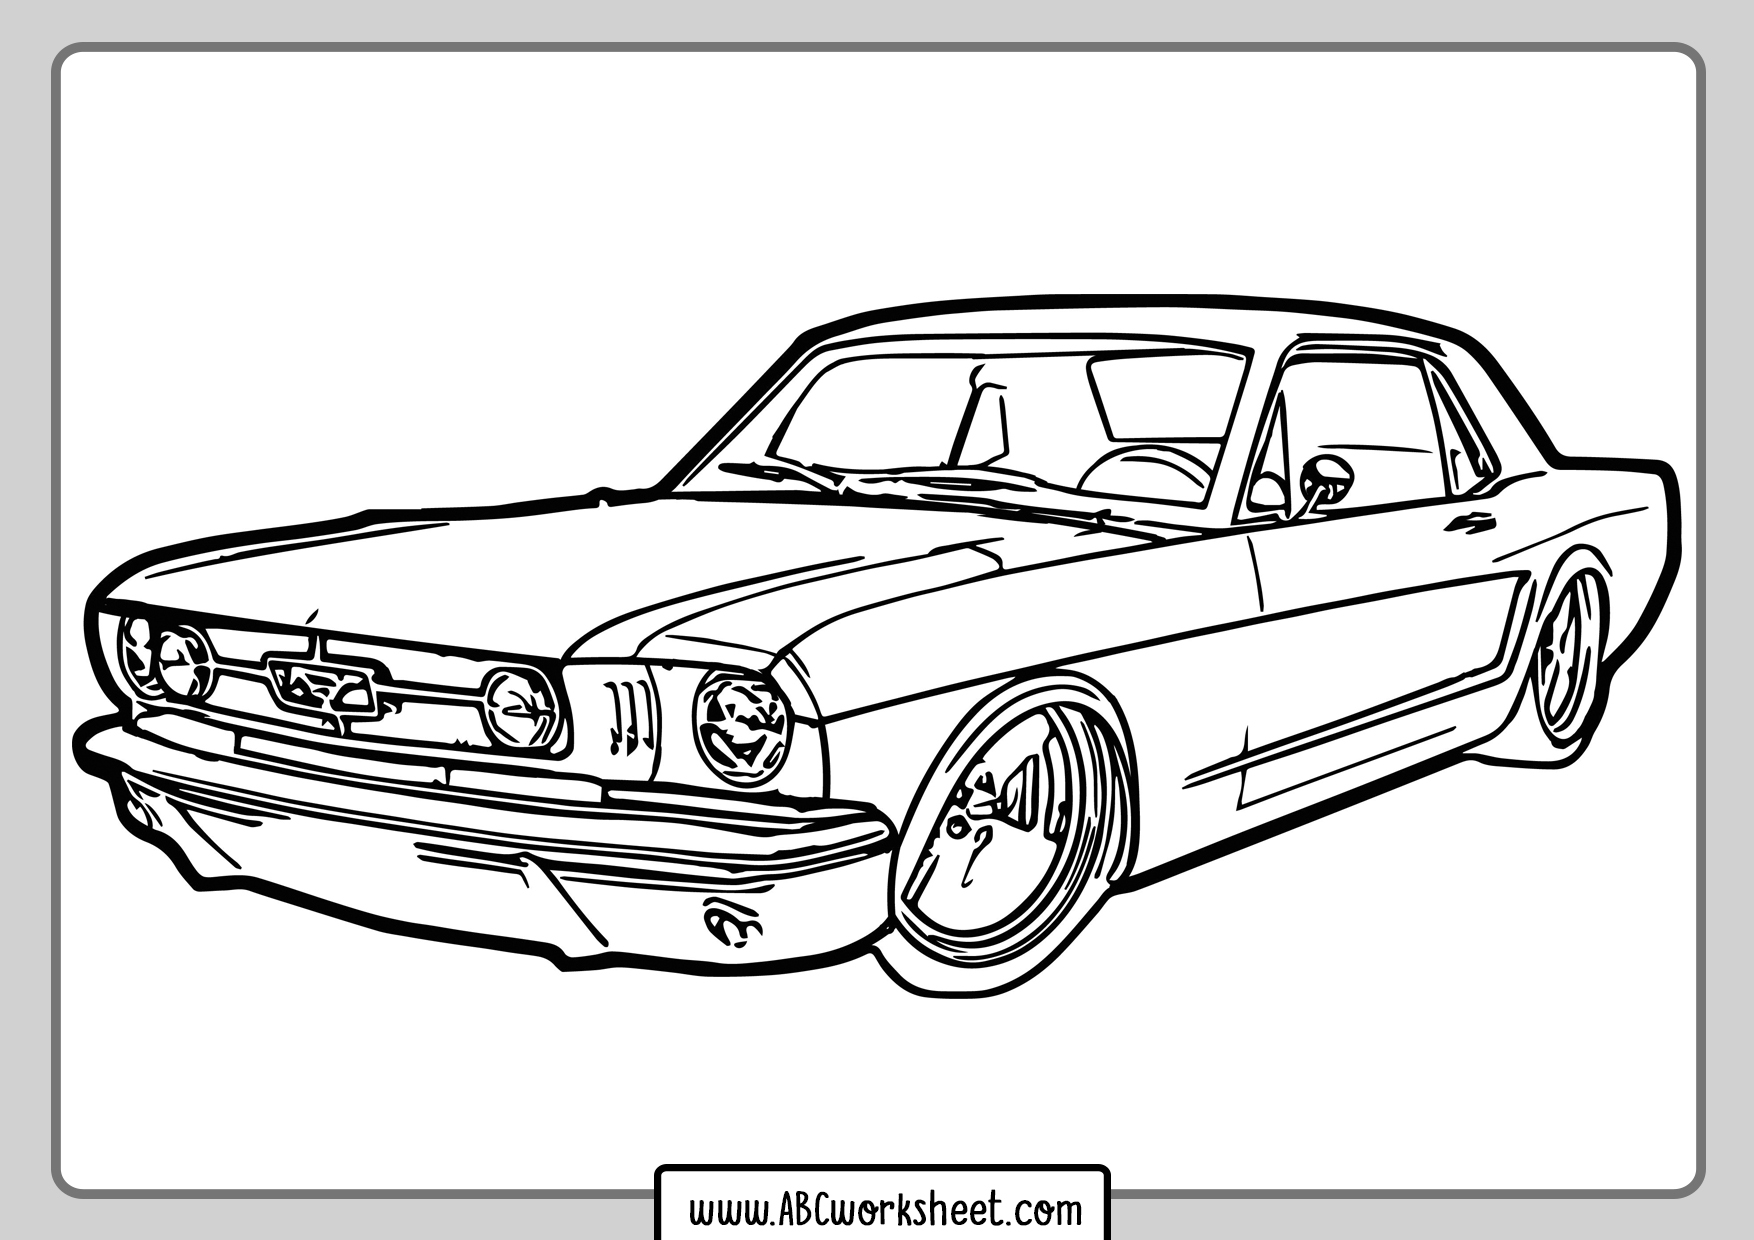 Printable Racing Car Coloring Page